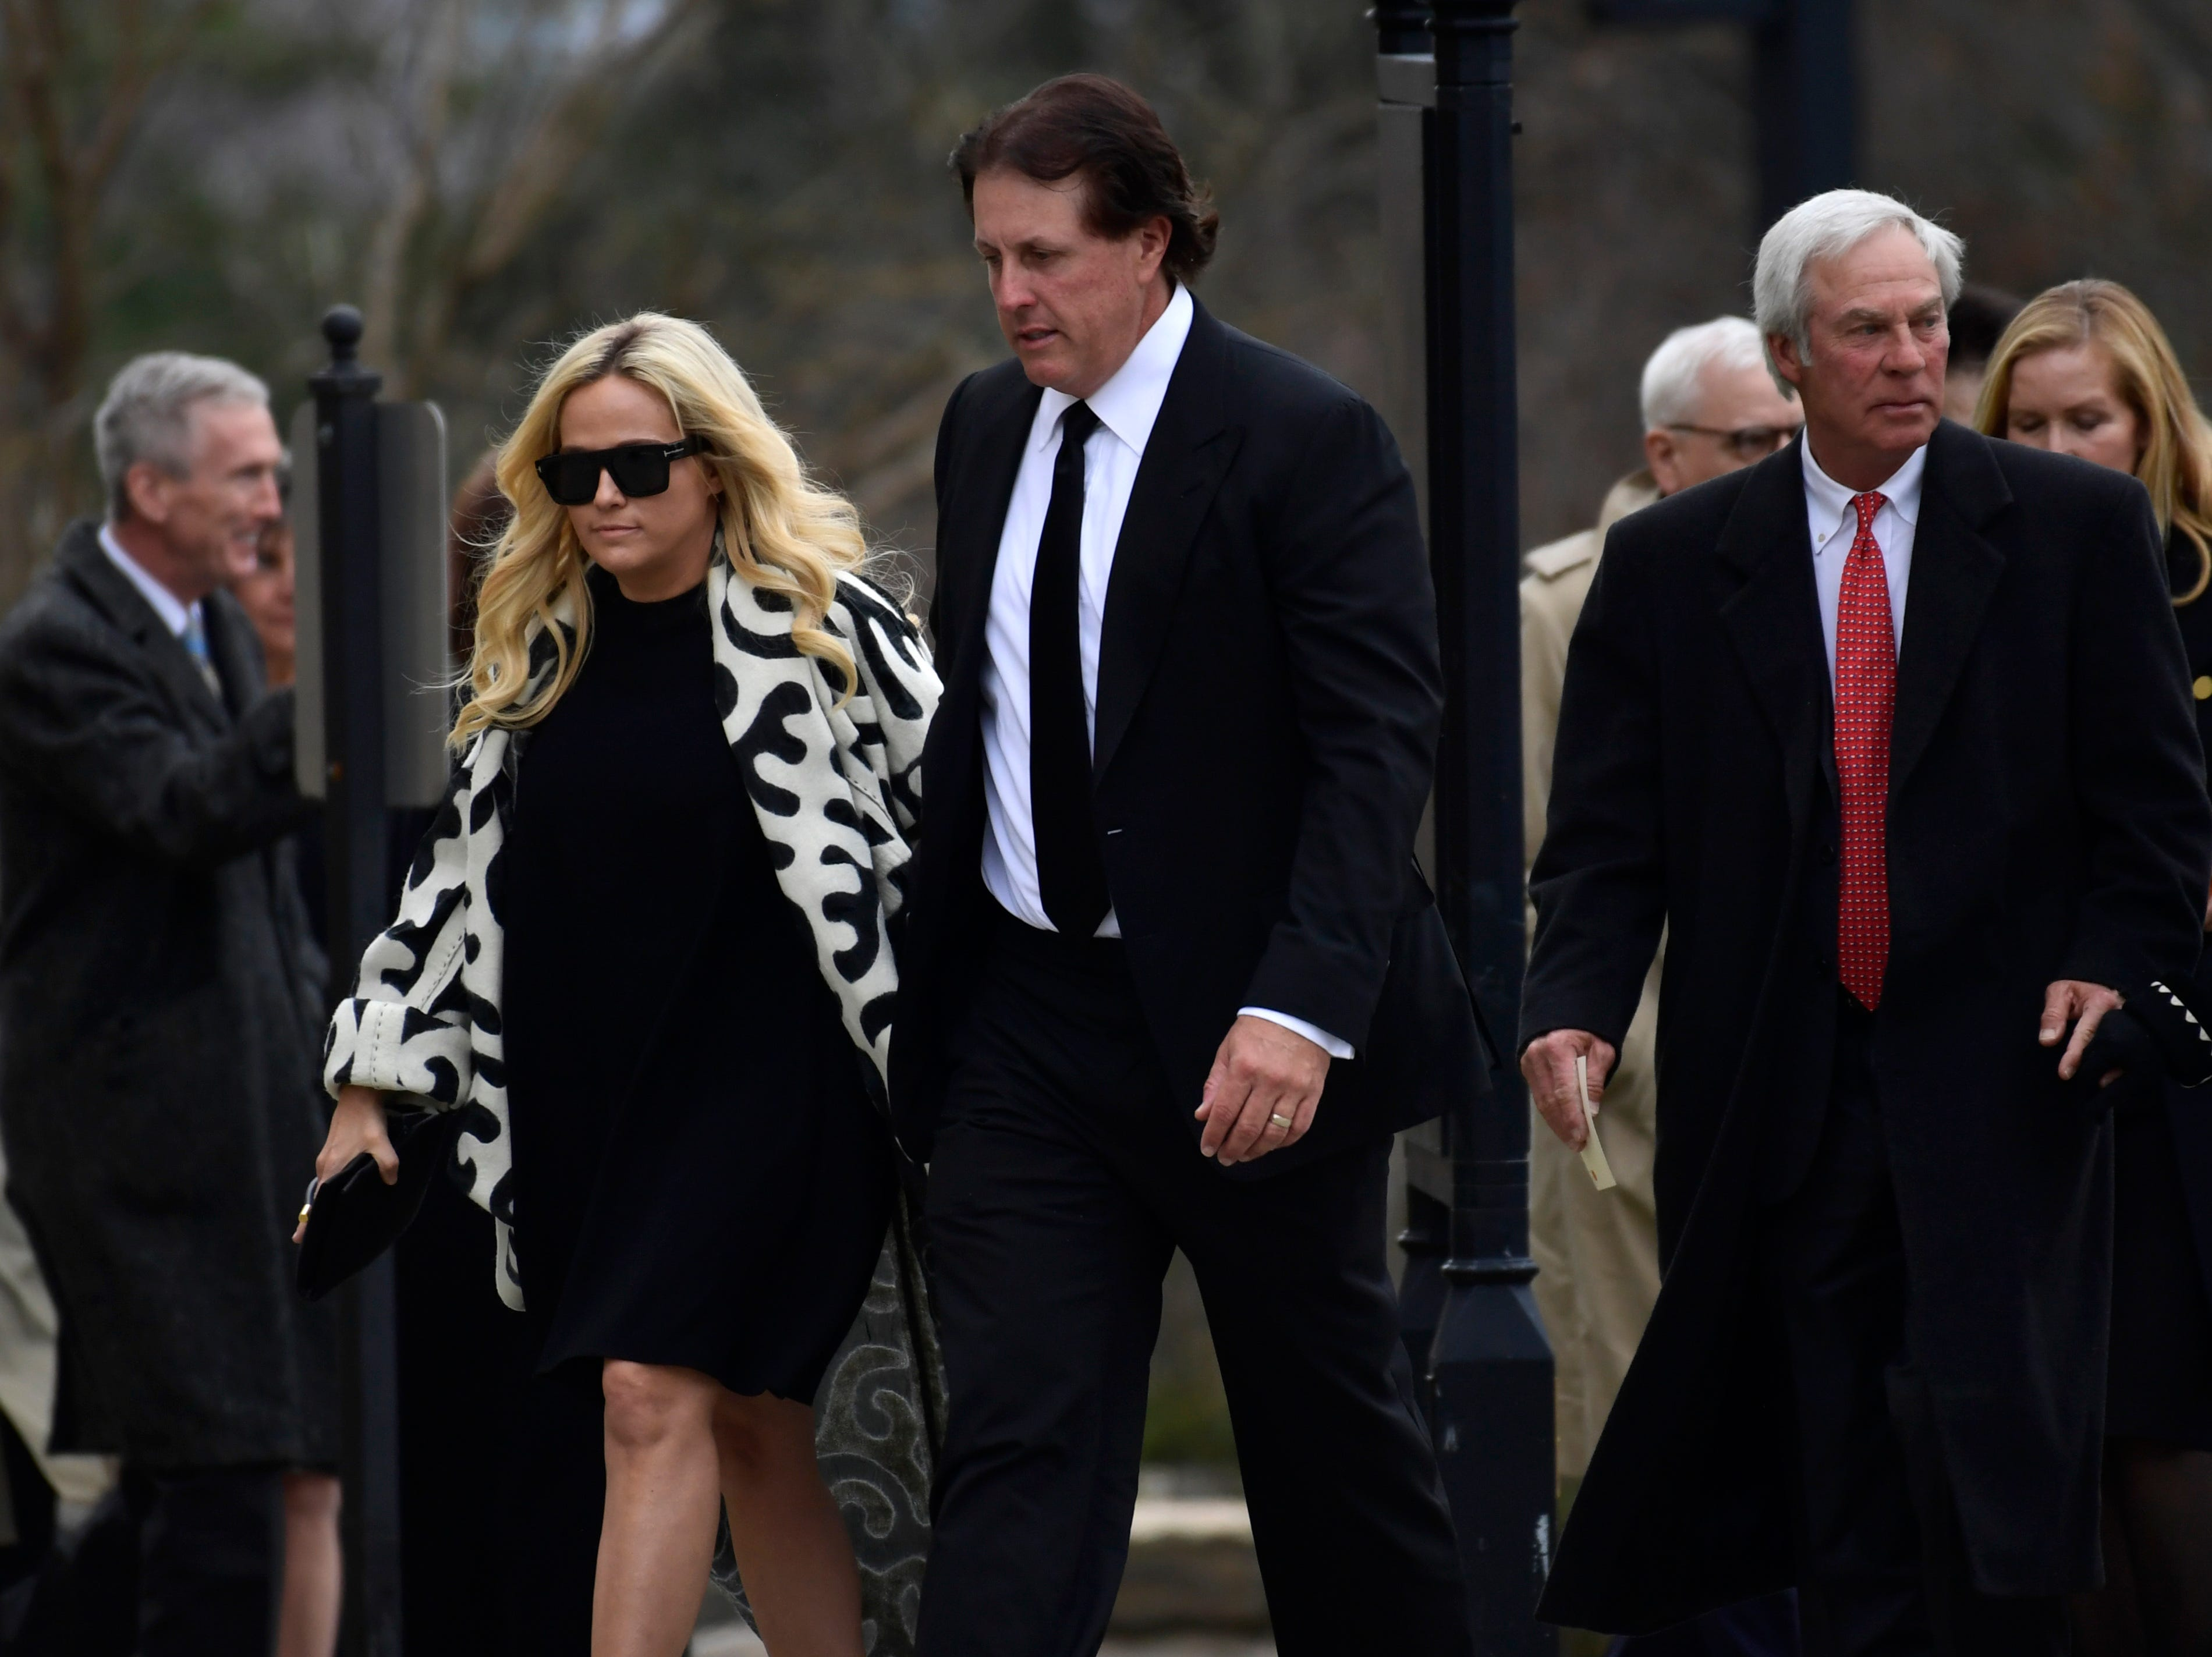 Professional golfer Phil Mickelson, center, arrives for the funeral at the National Cathedral in Washington.